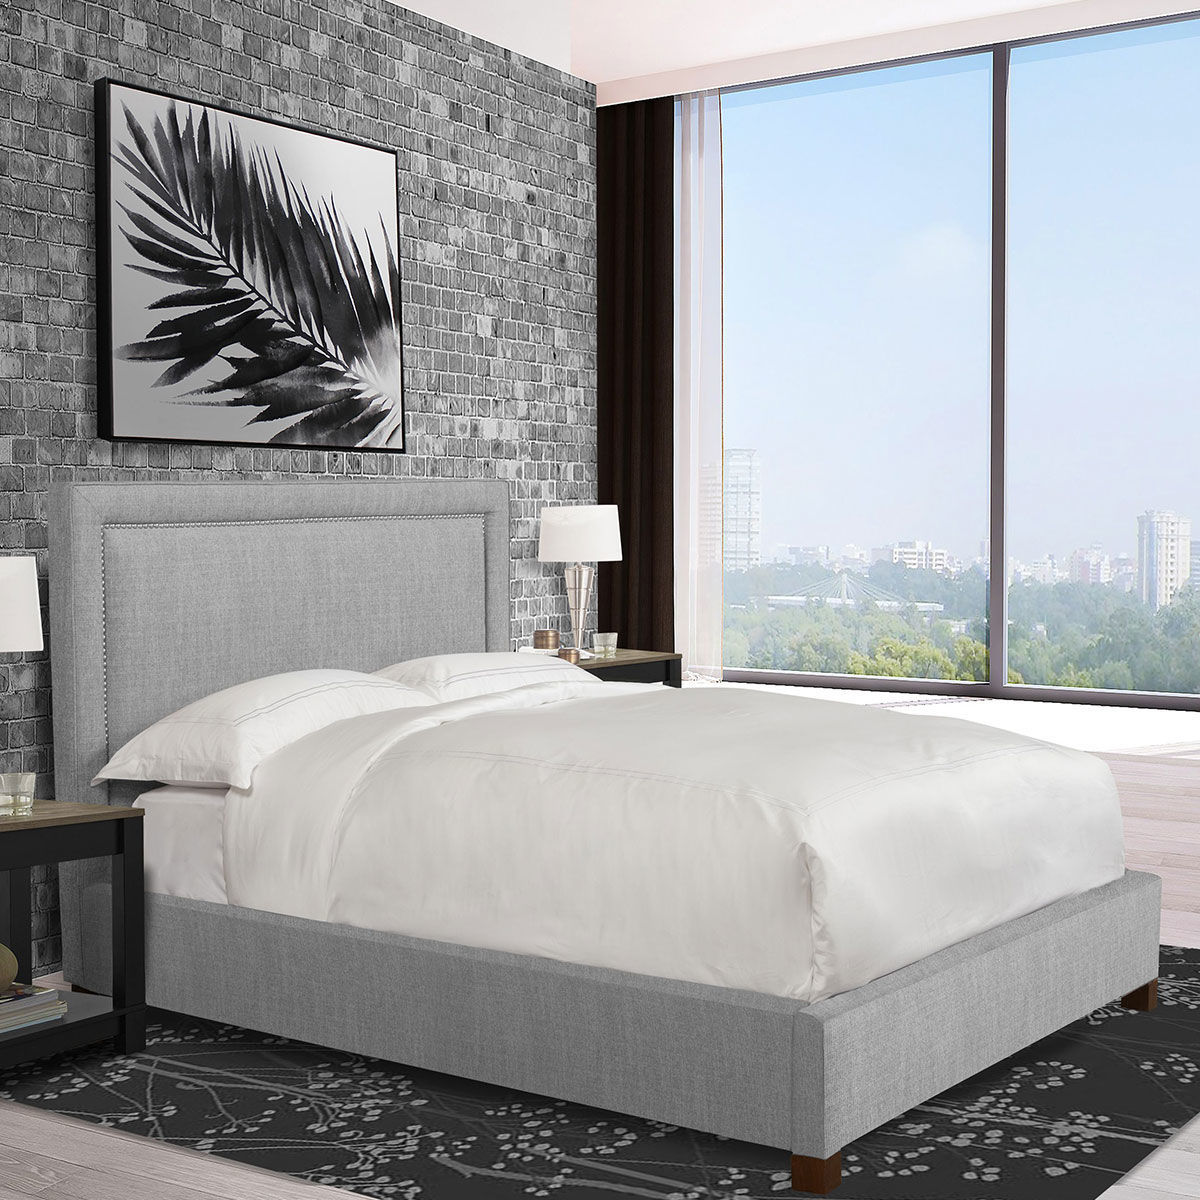 Picture of CODY KING UPHOLSTERED KING BED IN MINERAL